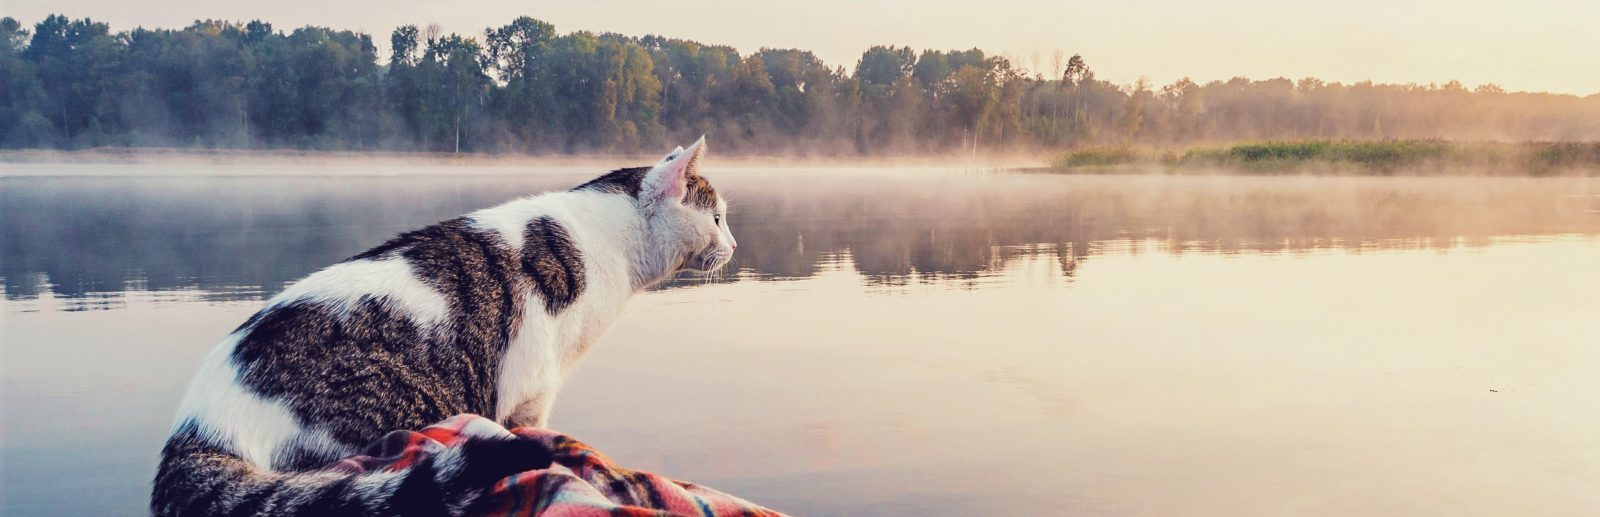 cat looking at water